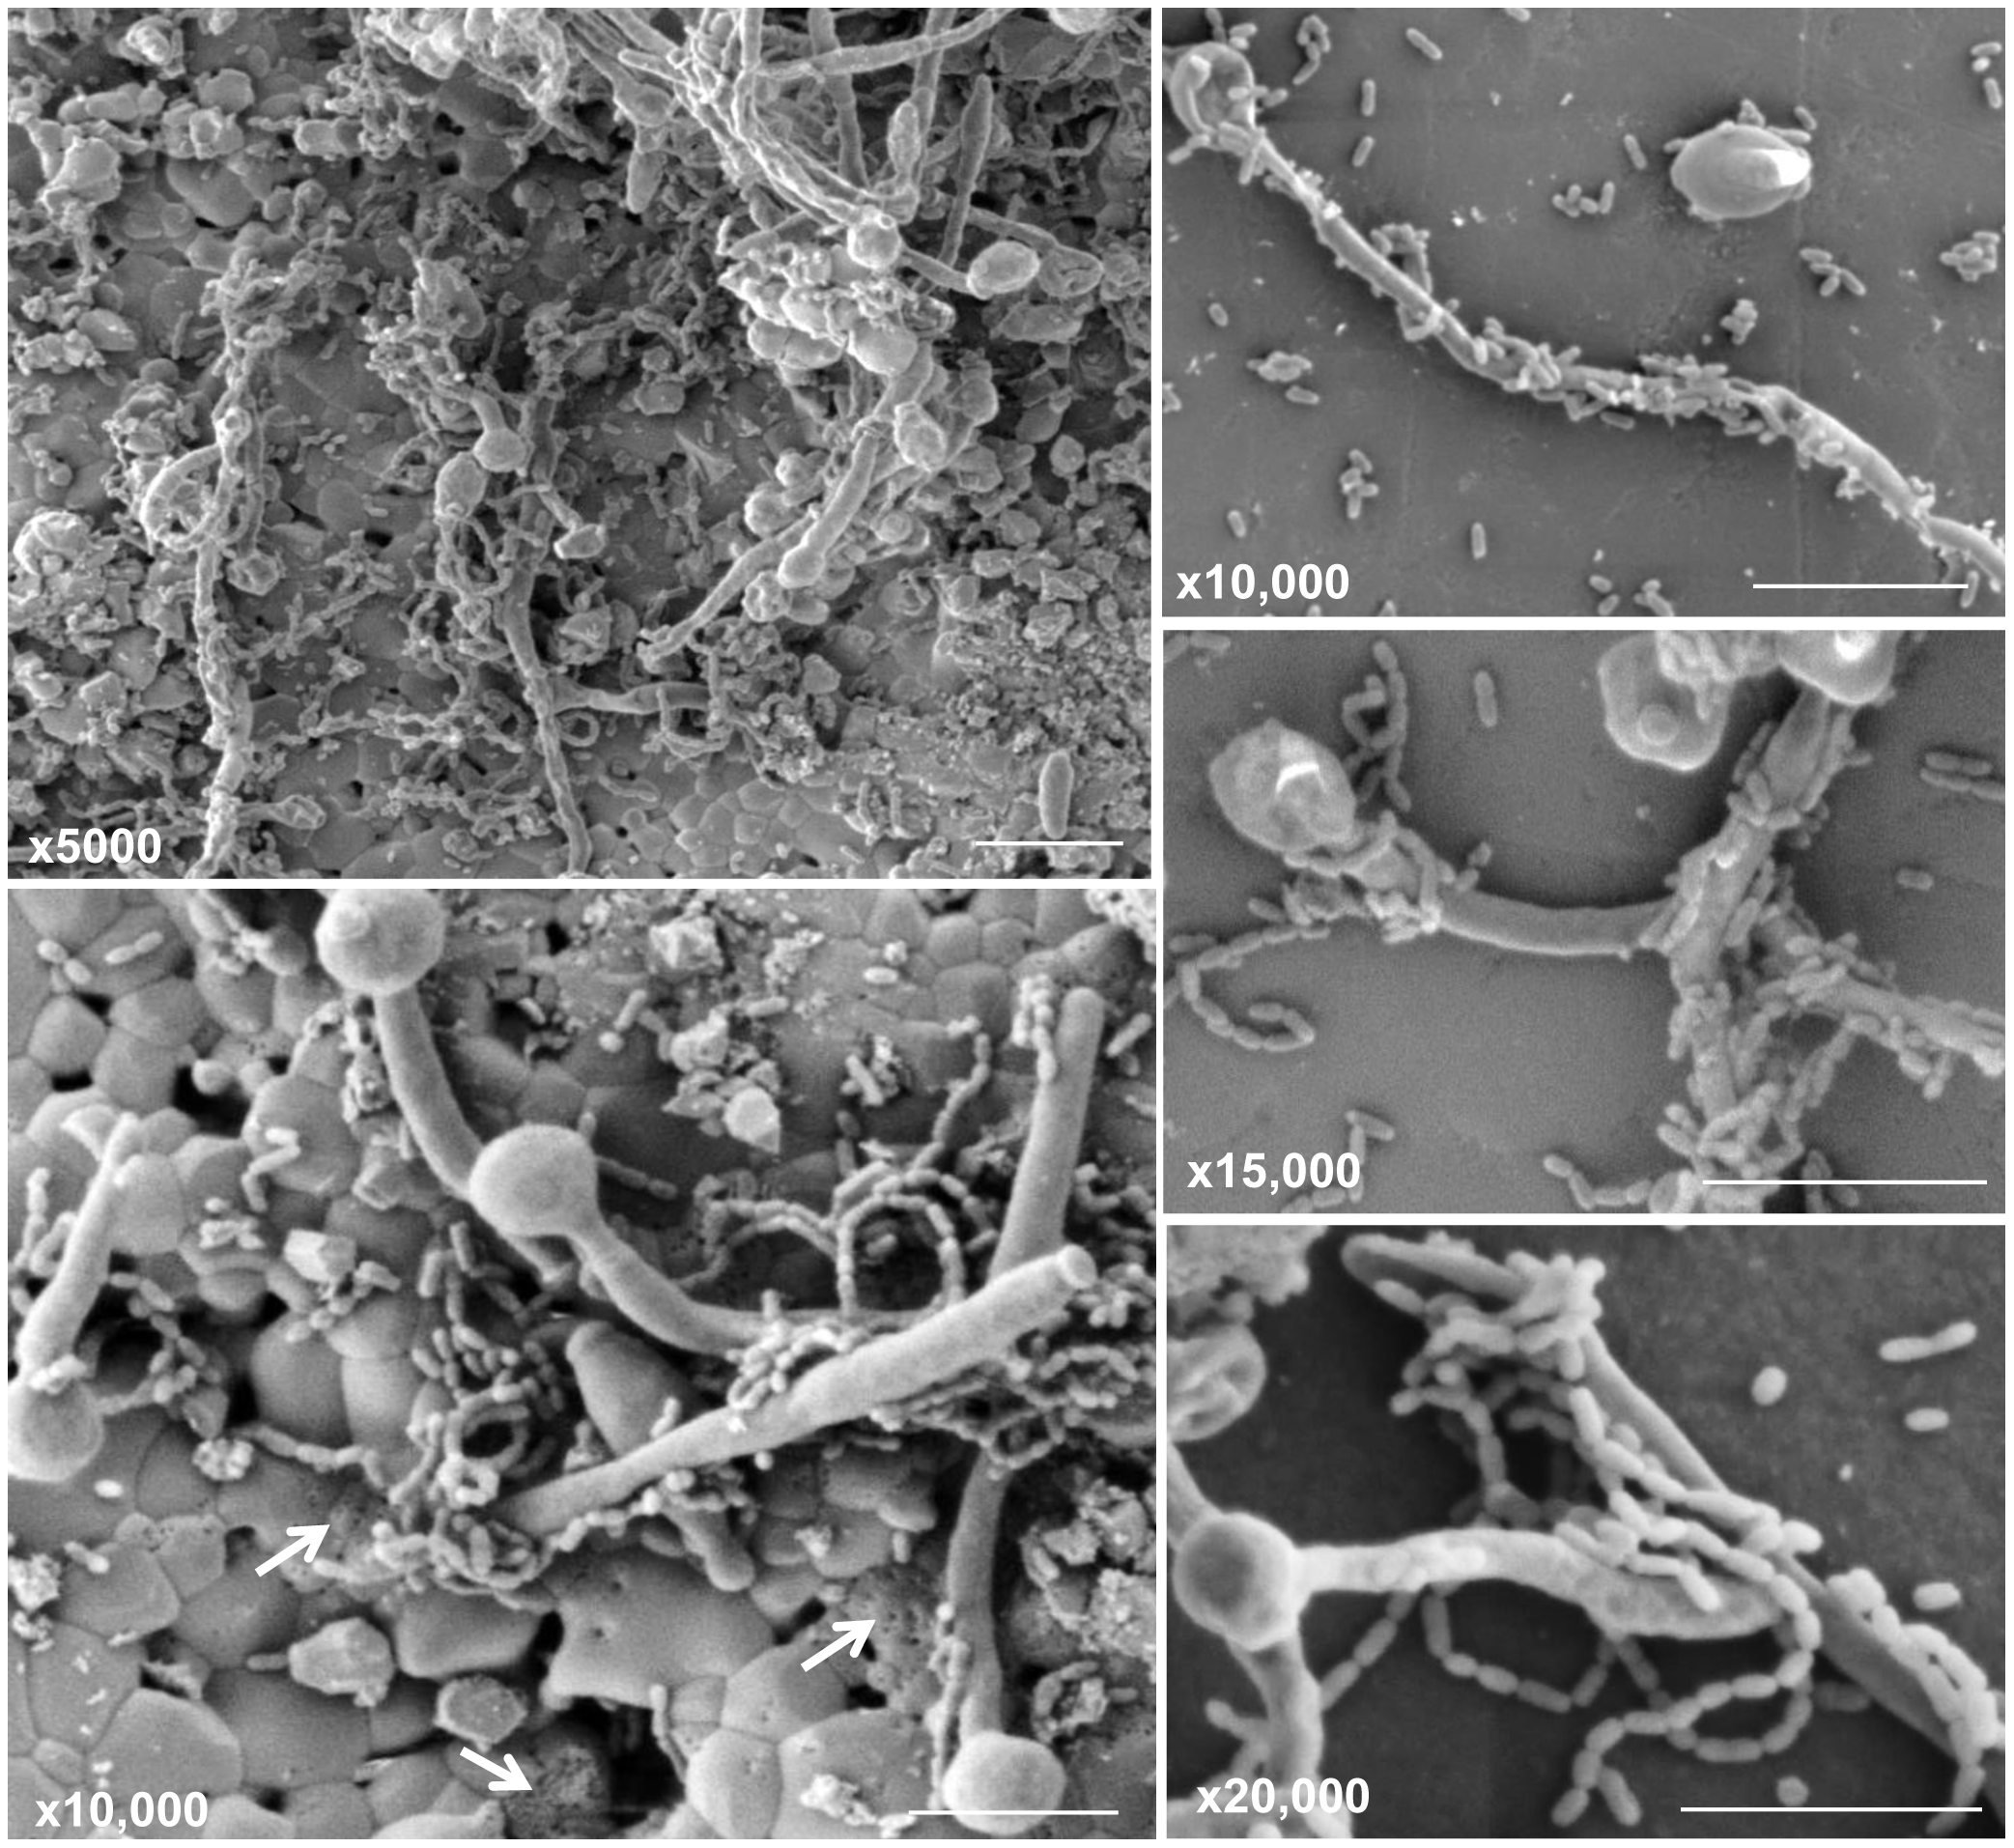 Scanning electron micrographs of mature mixed biofilms formed on discs of hydroxyapatite (a major component and essential ingredient of normal teeth), demonstrating the affinity of <i>S. mutans</i> to the hyphal elements of <i>C. albicans</i>.